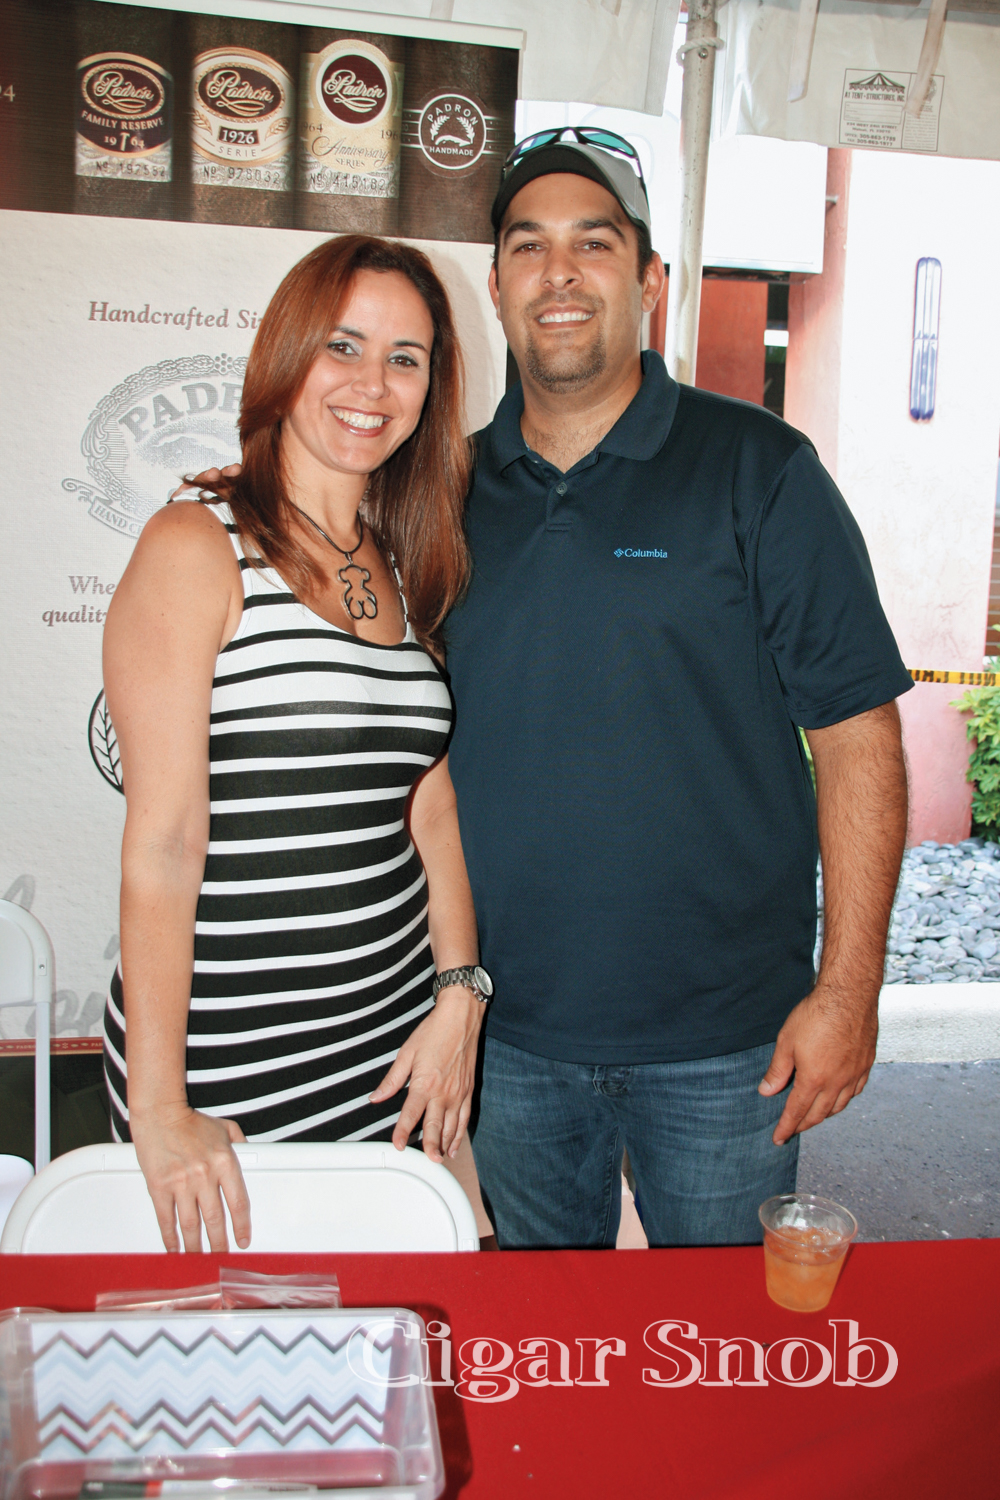 Paola Sánchez and Marco Soto-Padrón